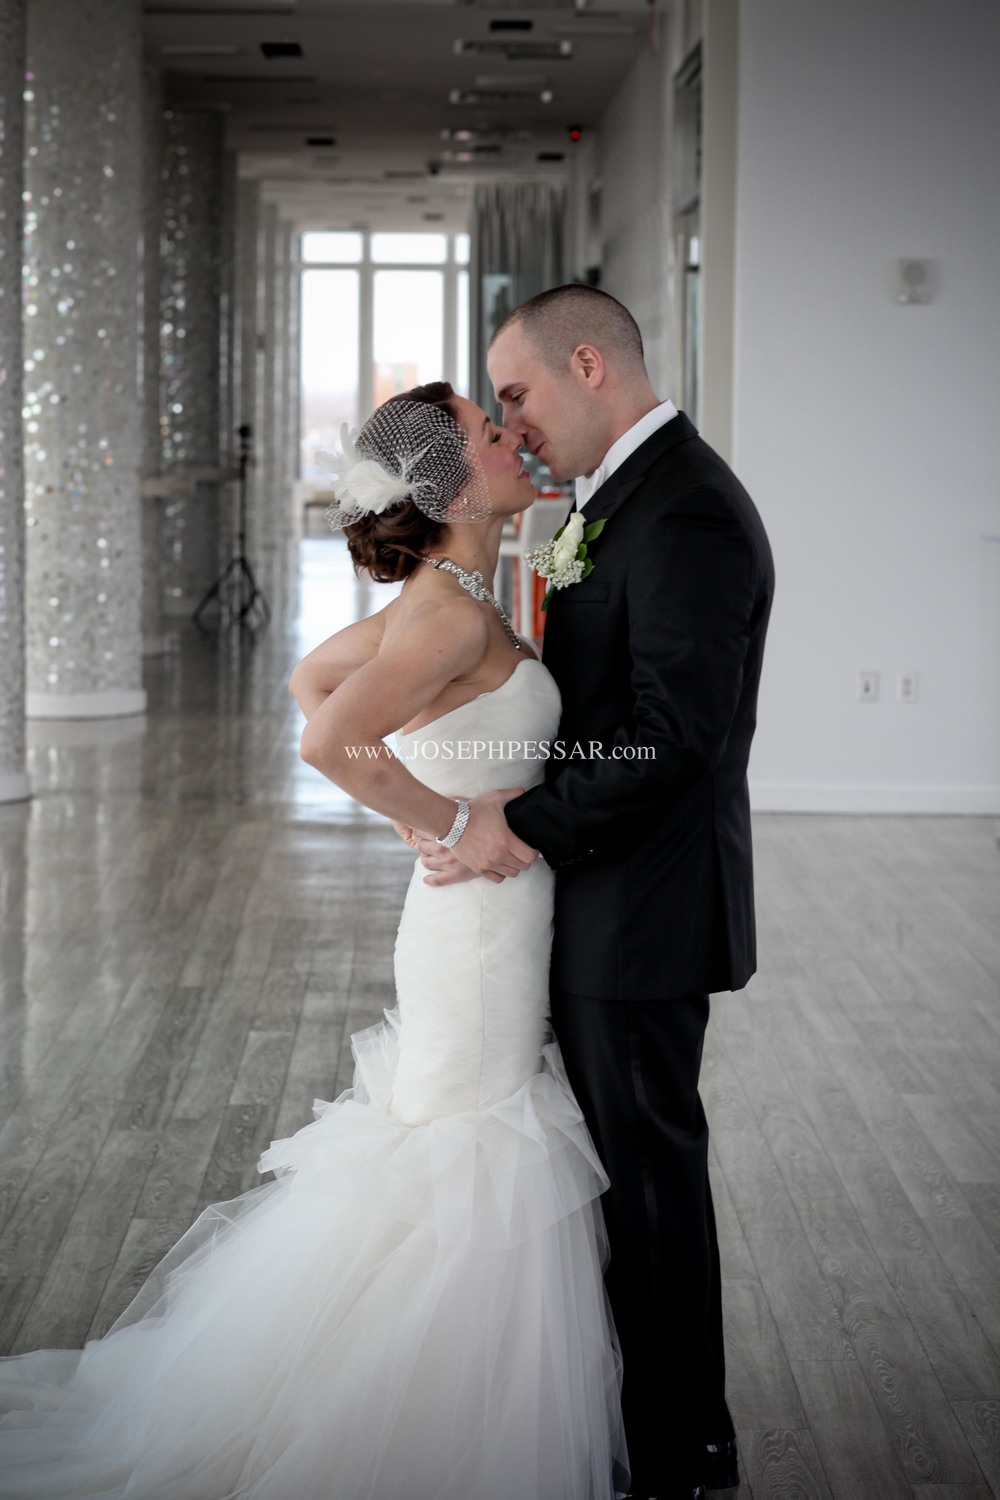 nyc_wedding_photographer0016.jpg